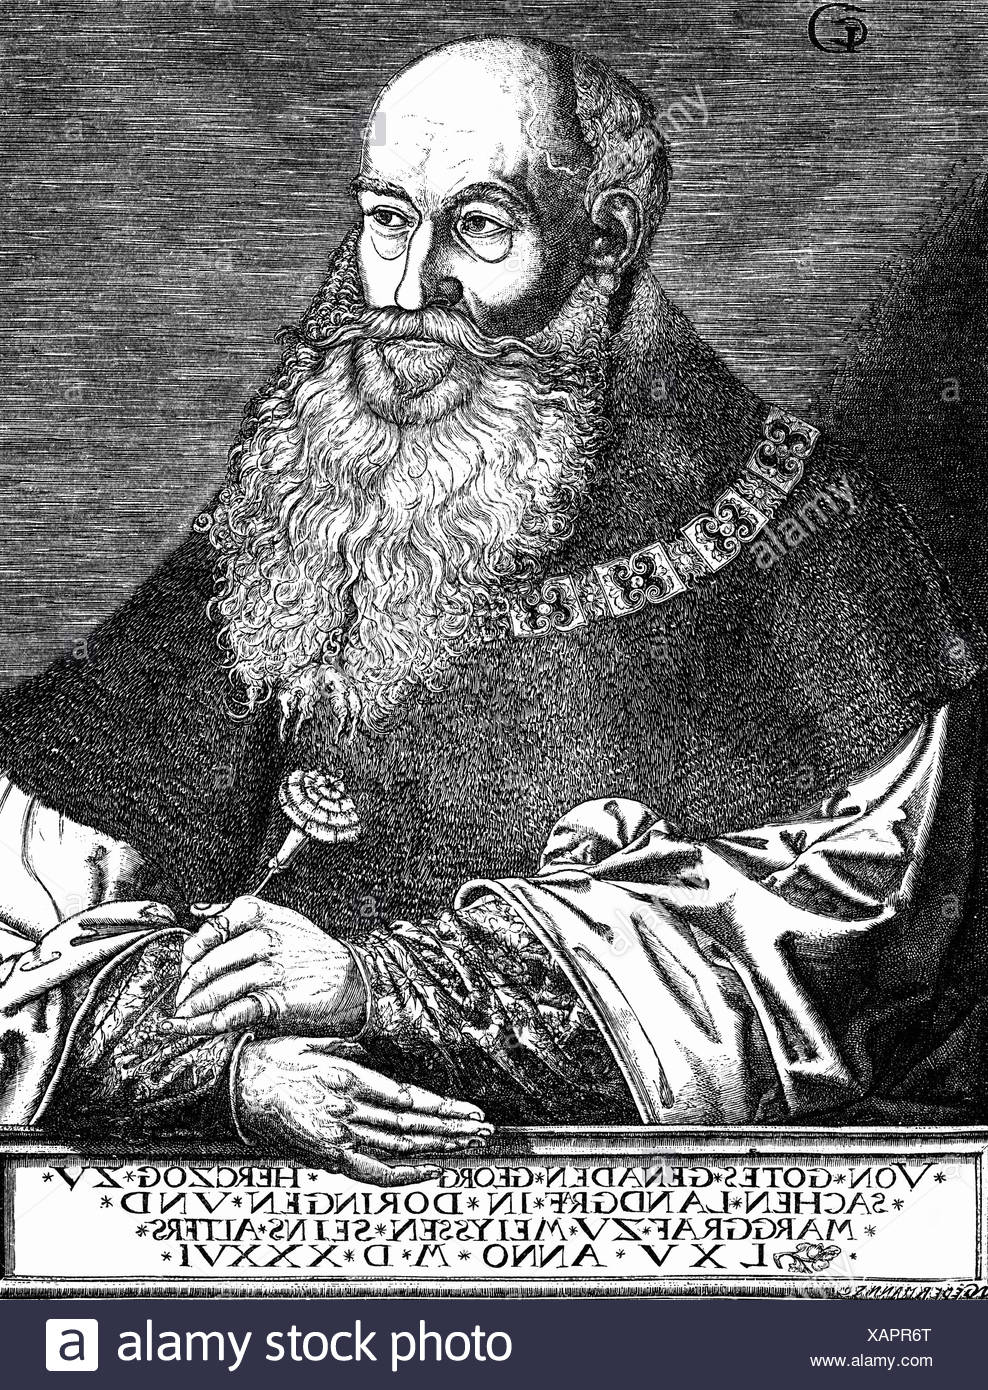 George 'the Bearded', 27.8.1471 - 17.4.1539, Duke of Saxony 12.9.1500 - 17.4.1539, half length, copper engraving by Georg Penecz, 1537, , Artist's Copyright has not to be cleared - Stock Image